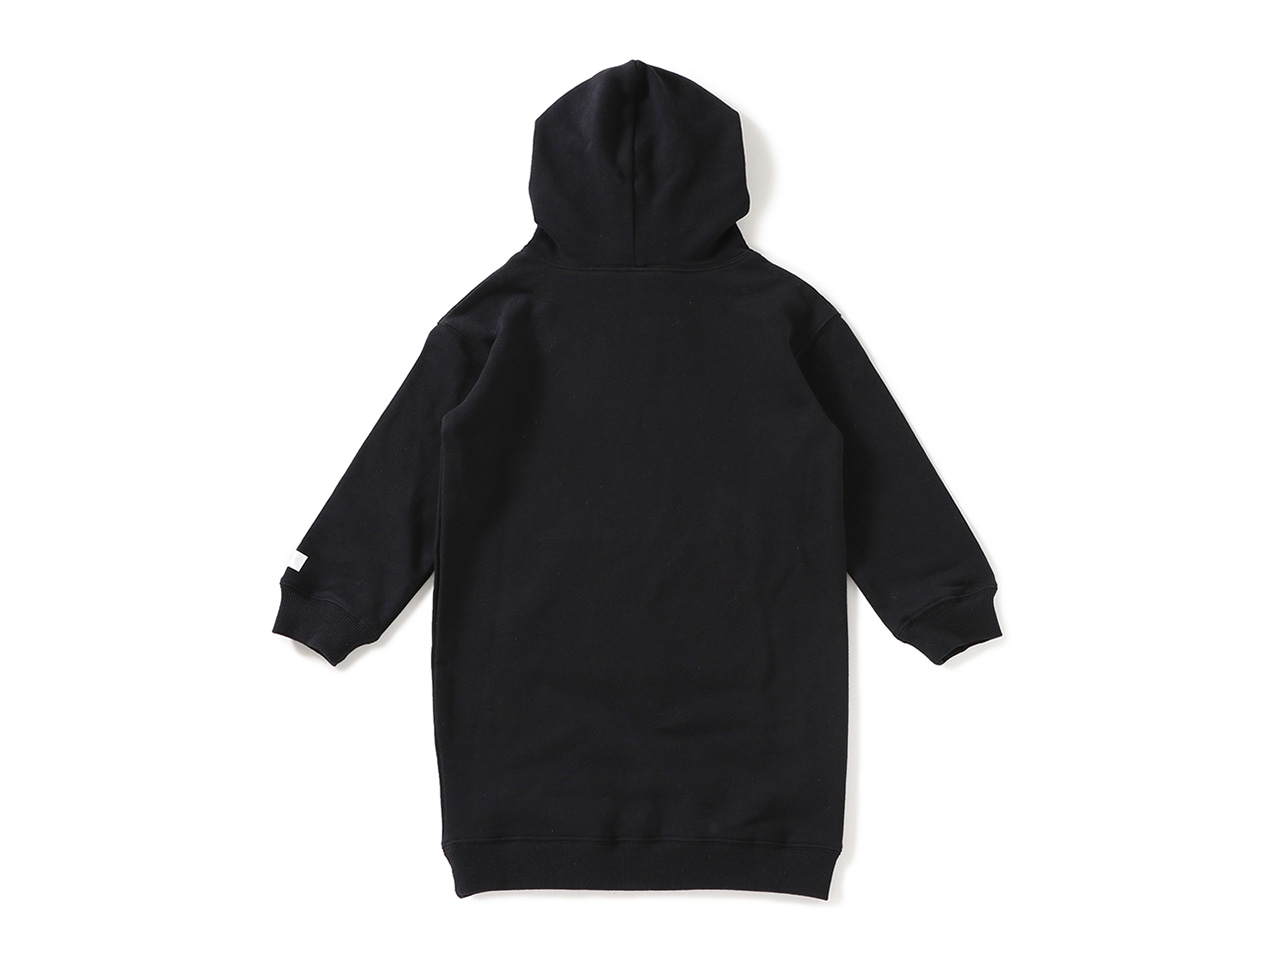 【60%OFF】IN THE HOUSE GIRL SWEAT HOODIE DRESS ith-0117